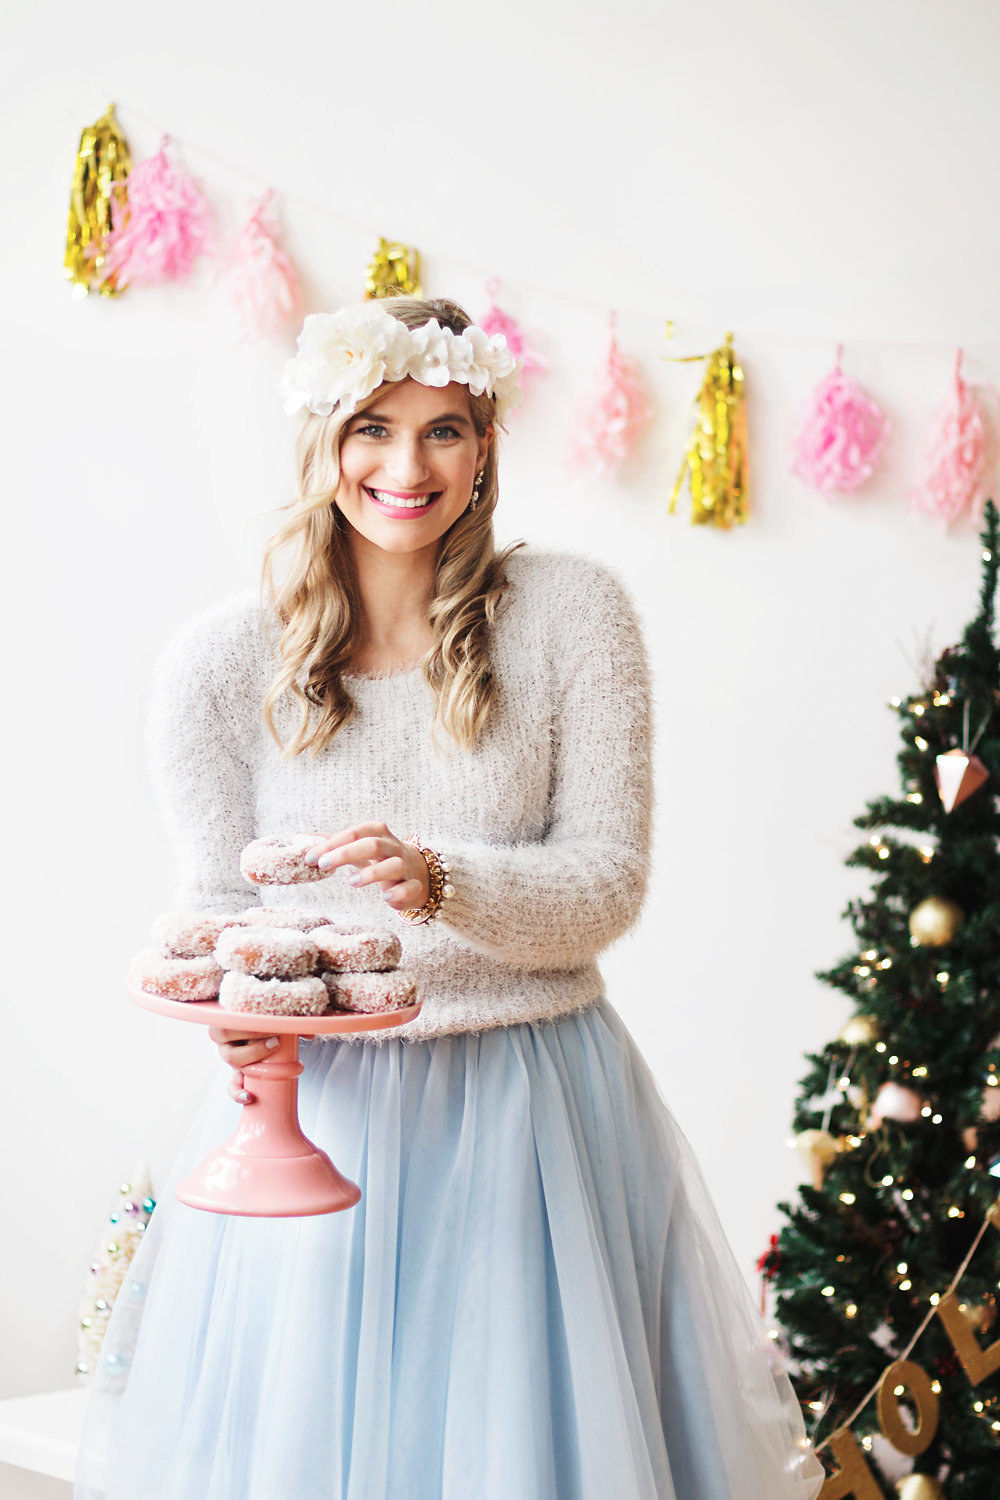 Whimsical, holiday photoshoot. Tulle skirts, floral crowns and holiday decor | Bijuleni